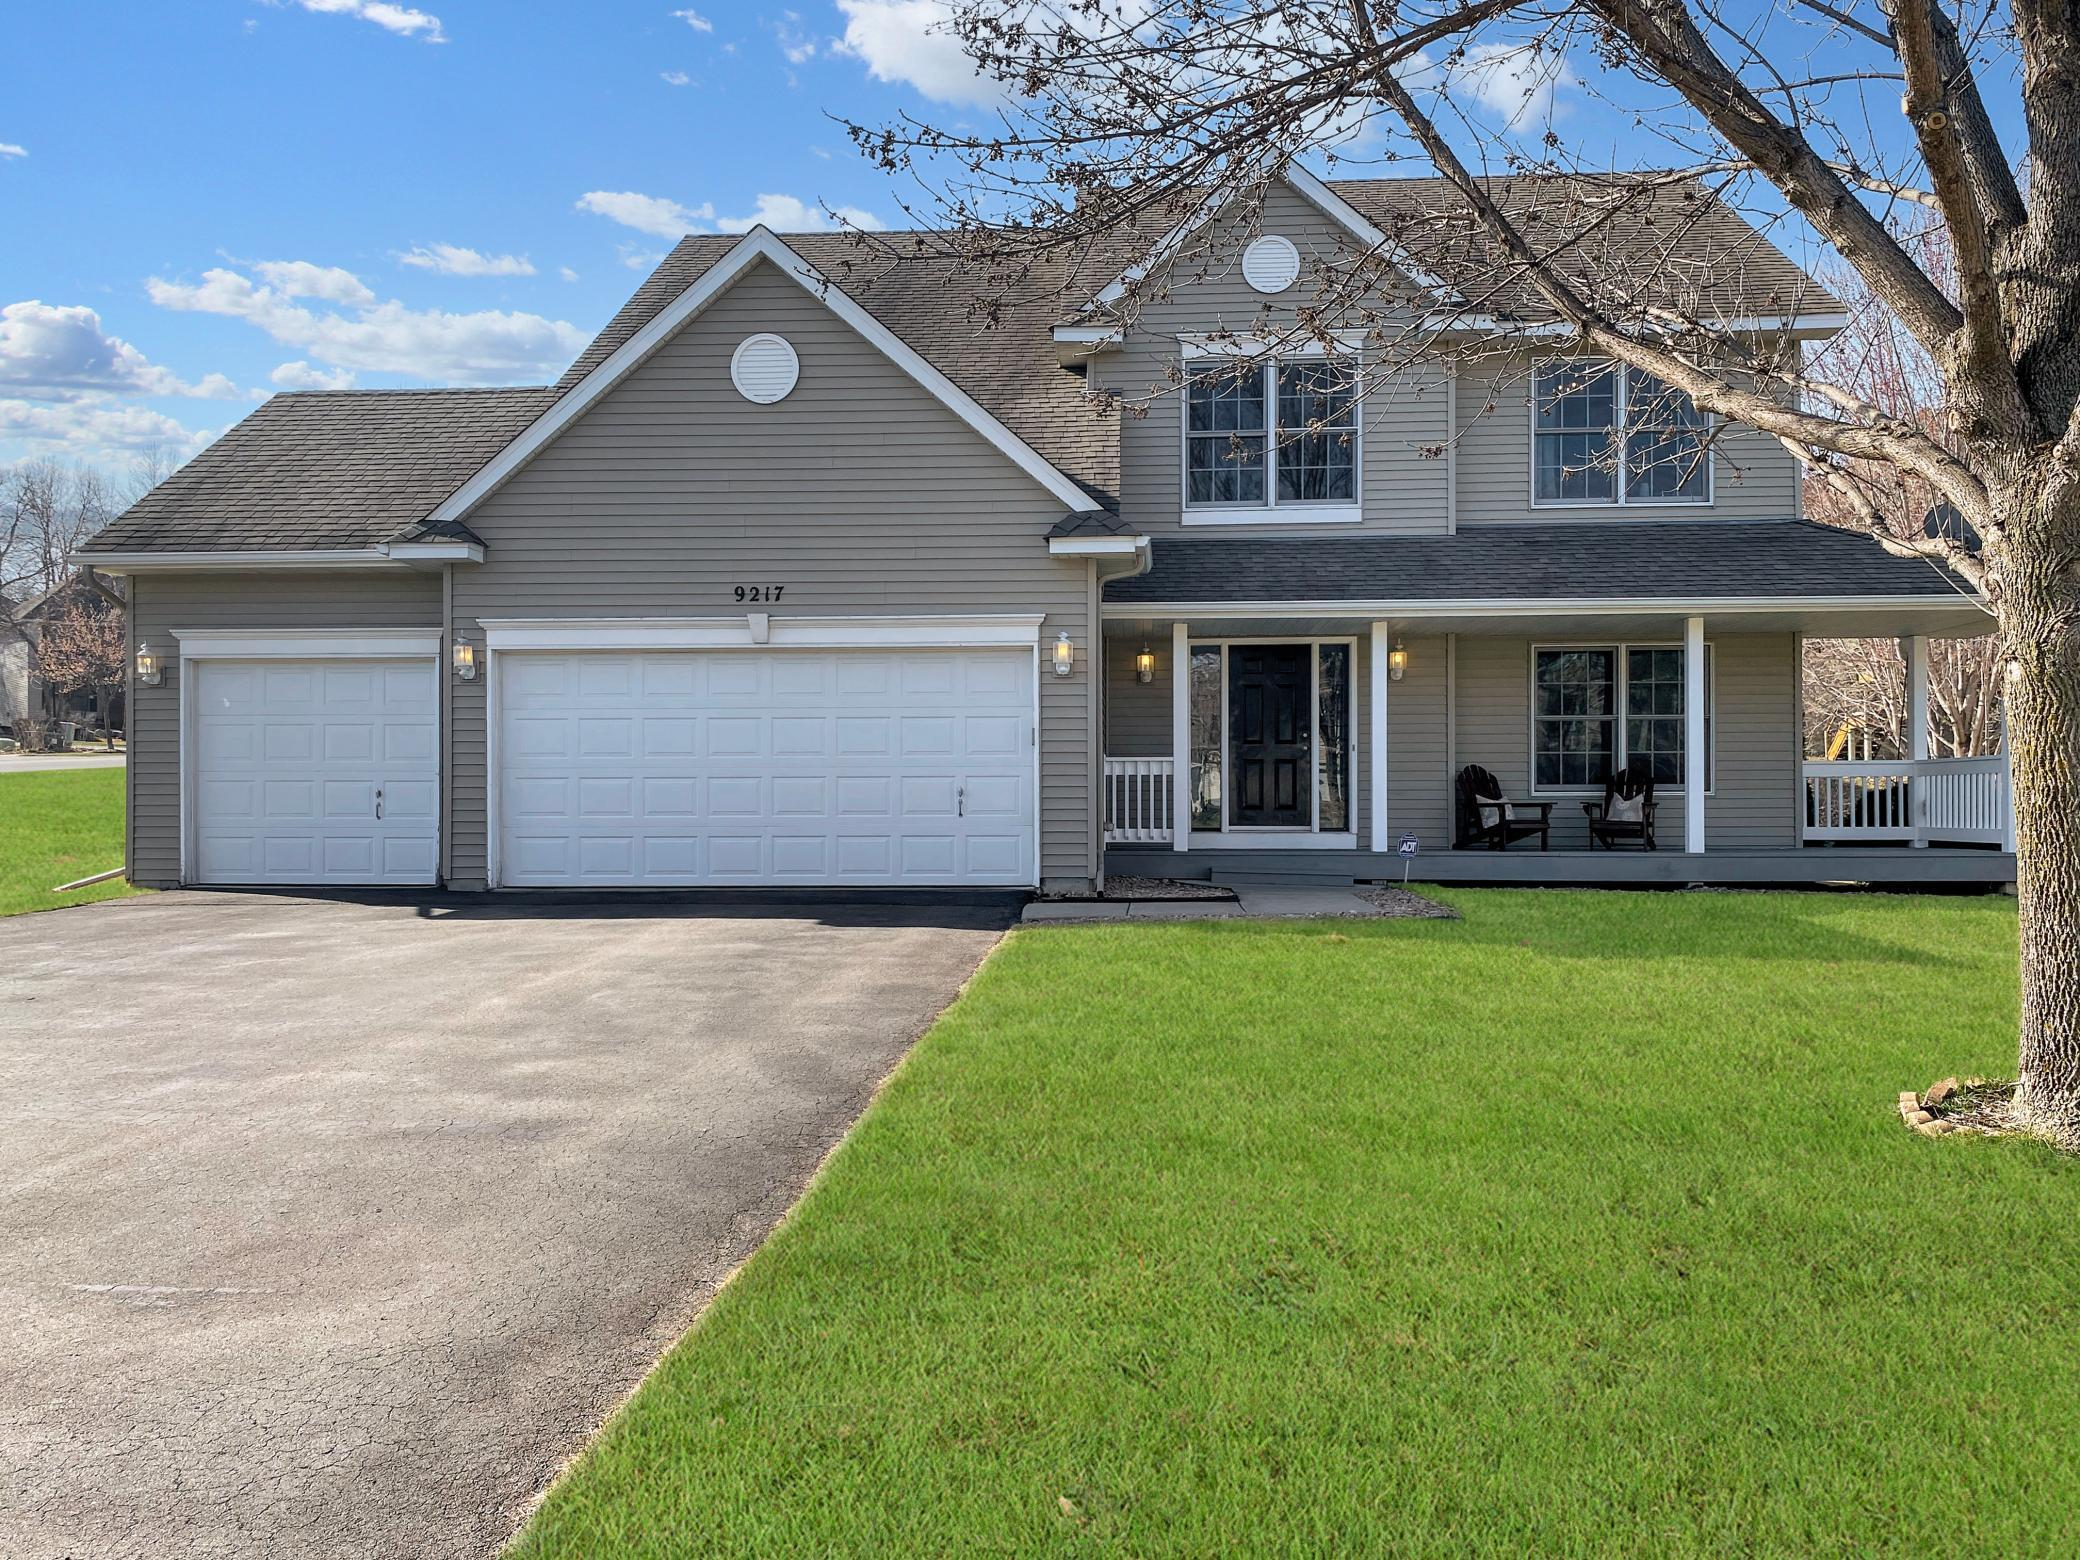 9217 Carriage Hill Road, Savage MN 55378 - Photo 1